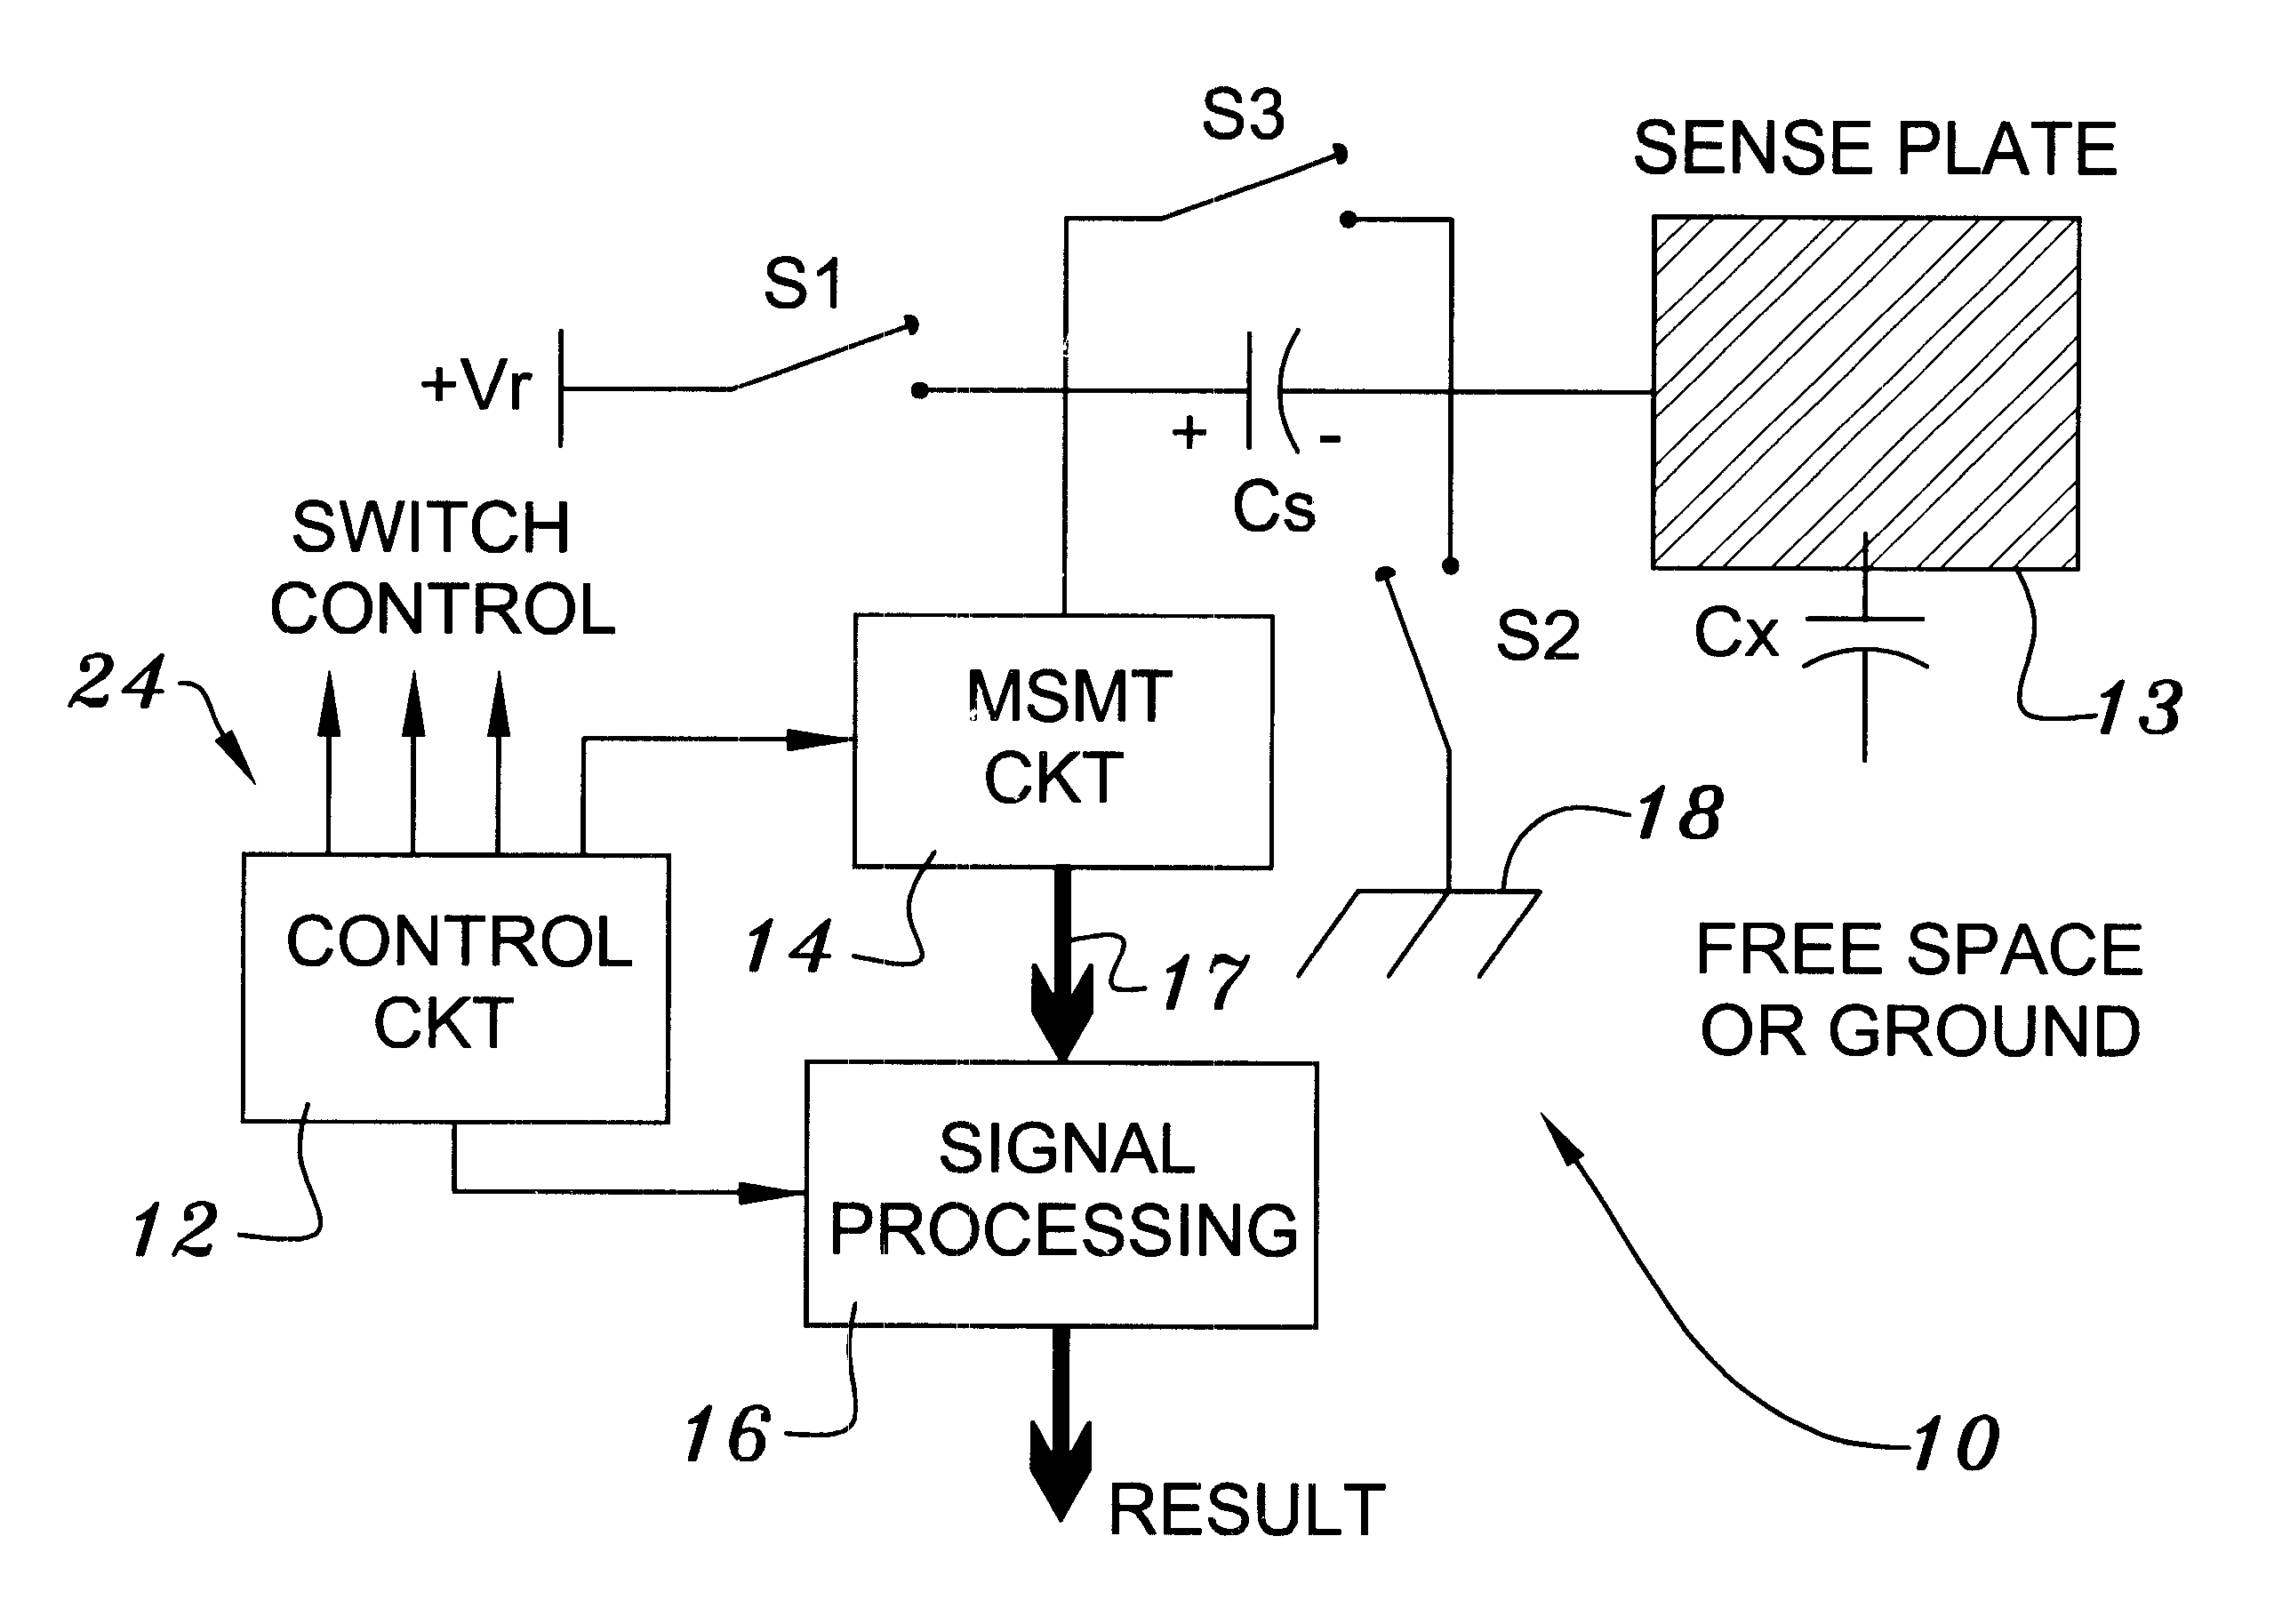 Patent Us 6466036 B1 Symbols Together With P Channel Jfet Schematic Symbol Moreover Block First Claim